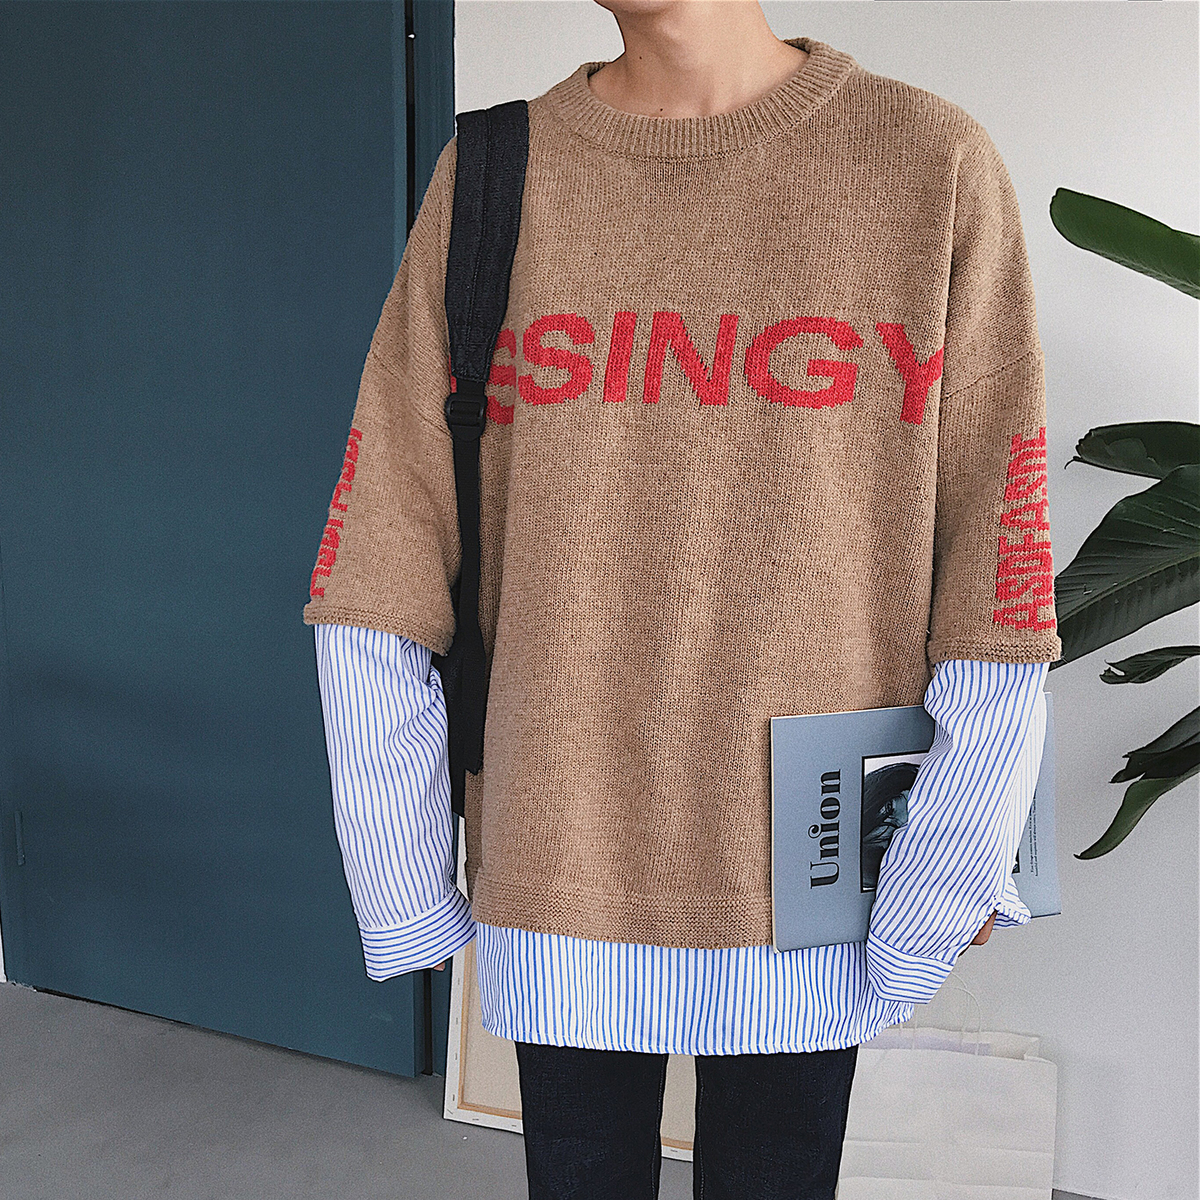 2017 Autumn And Winter The Latest Fashion Trend Of Small Fresh Korean Version Of The Loose Shirt Sleeves Knitted Sweater Jacket